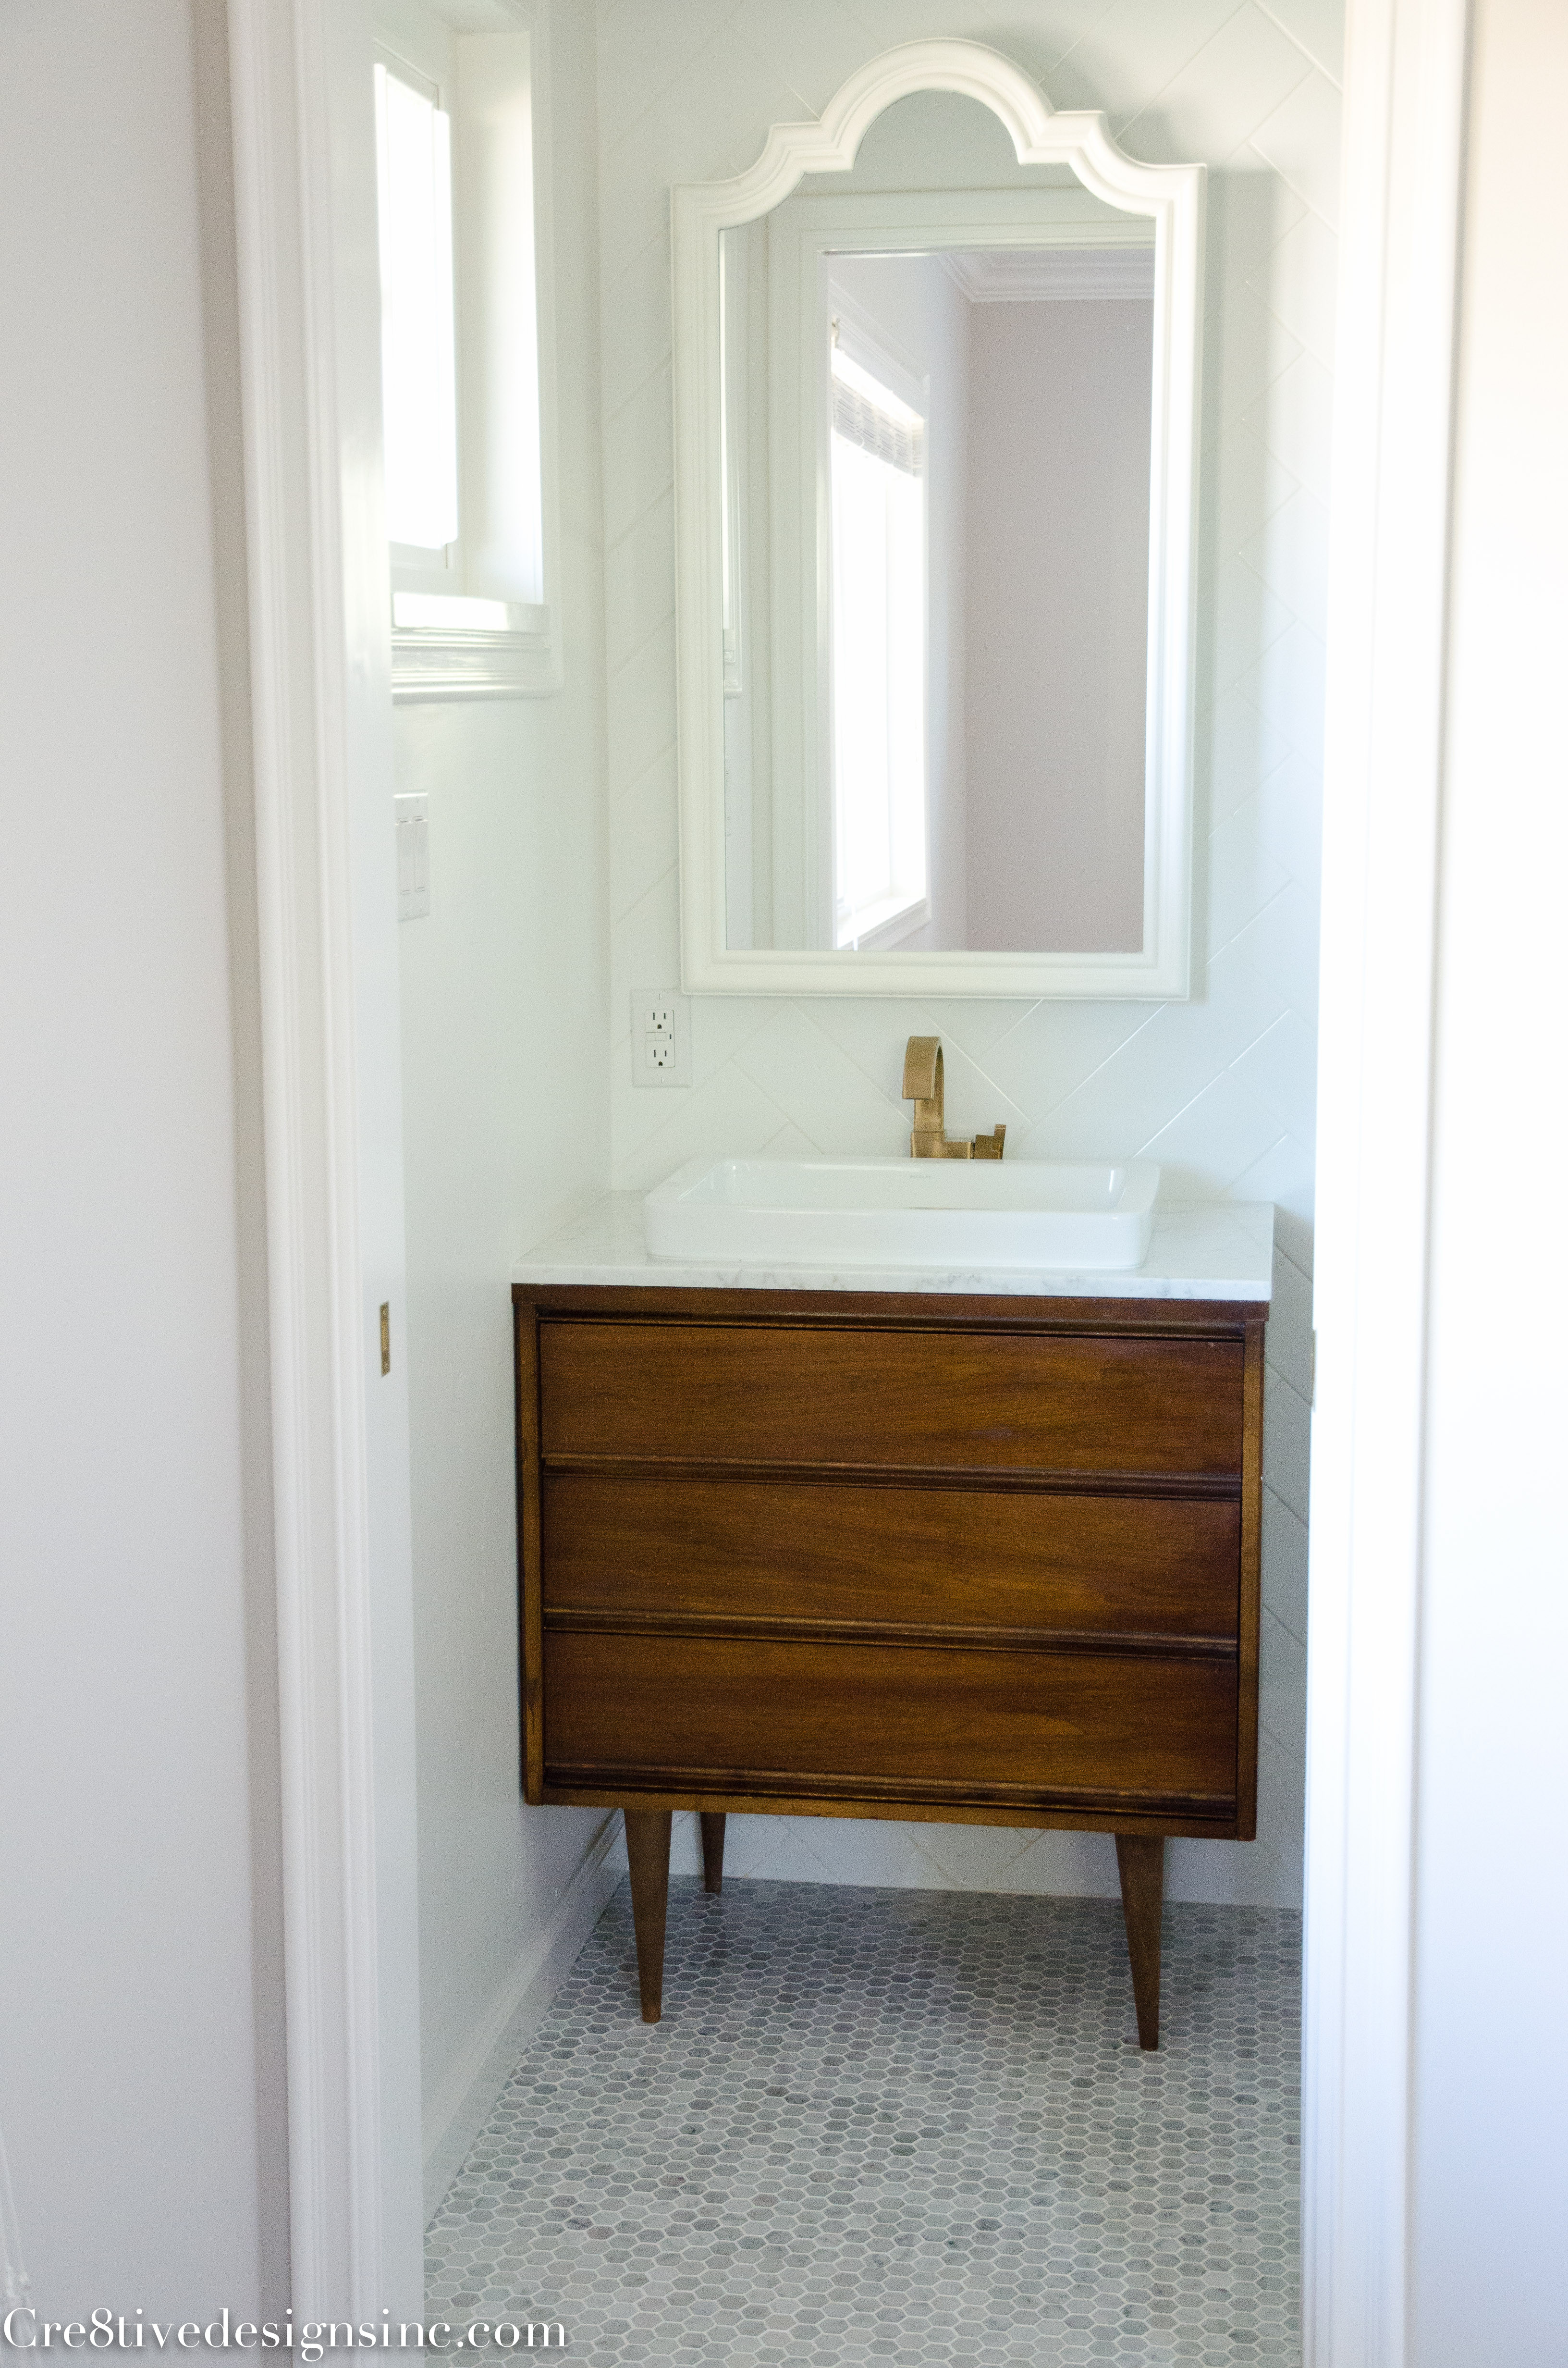 Best ideas about Mid Century Bathroom Vanity . Save or Pin Designing a tiny bathroom Cre8tive Designs Inc Now.